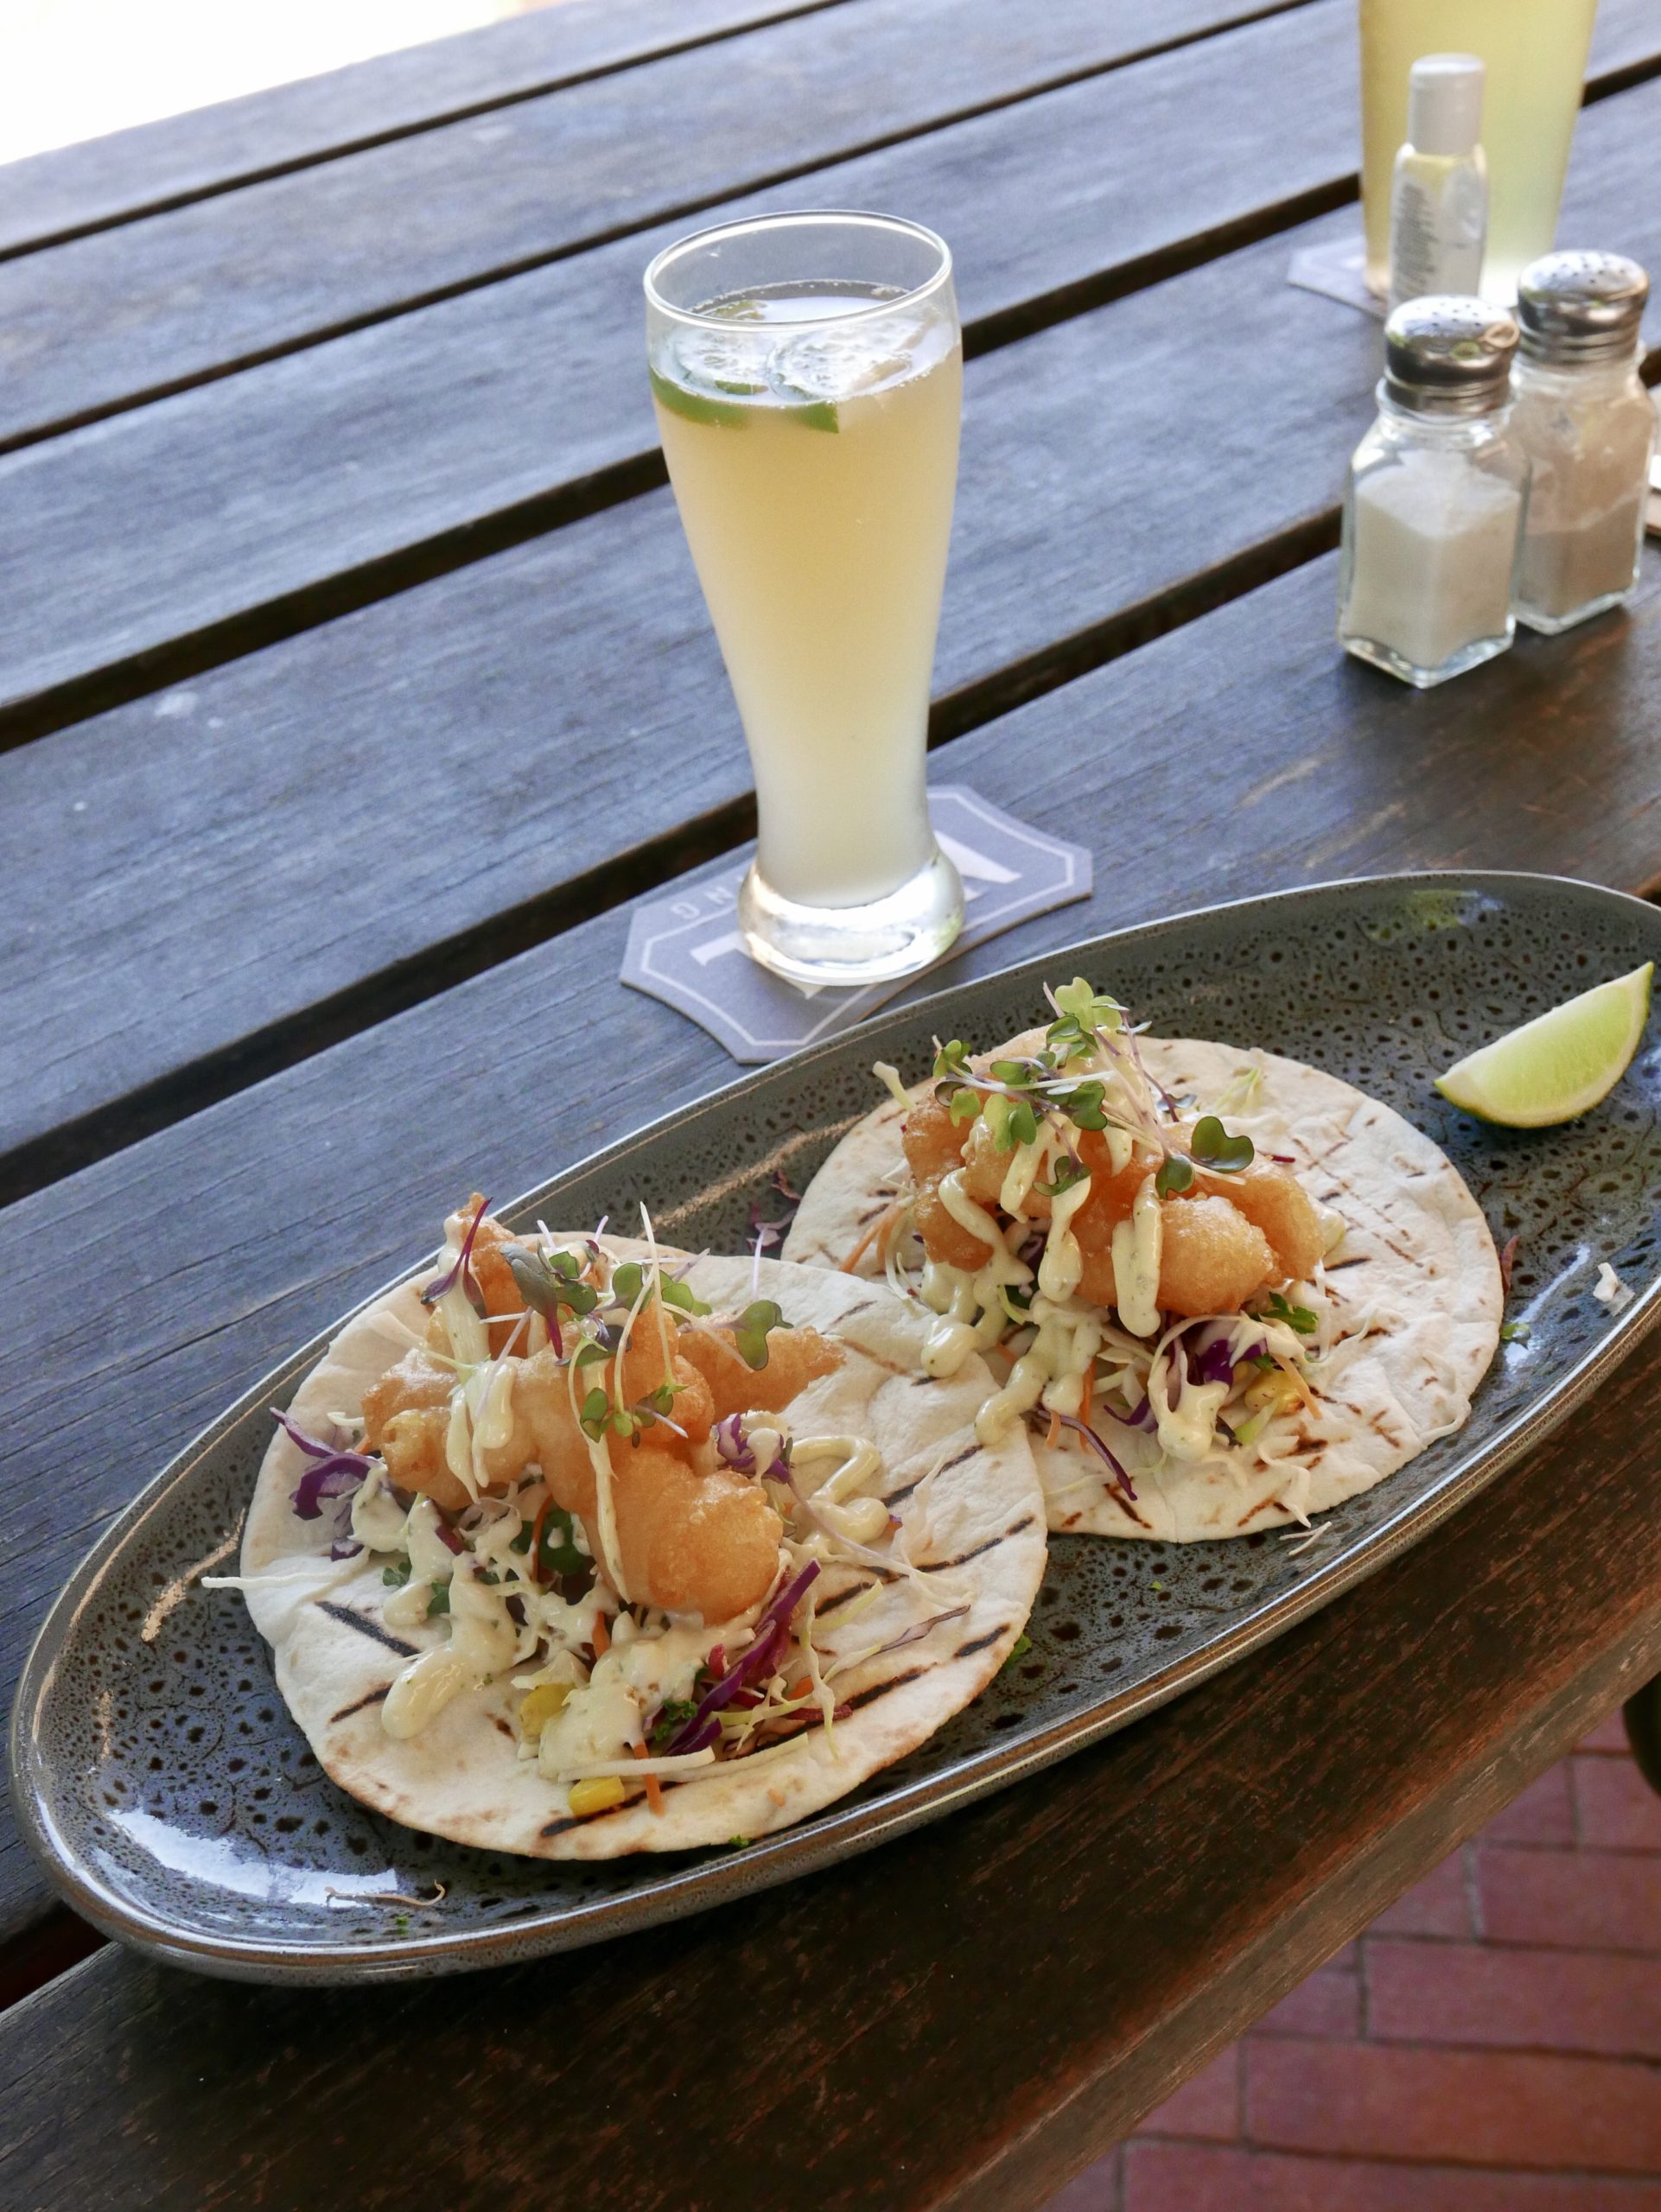 Two prawn tacos with beer in the background